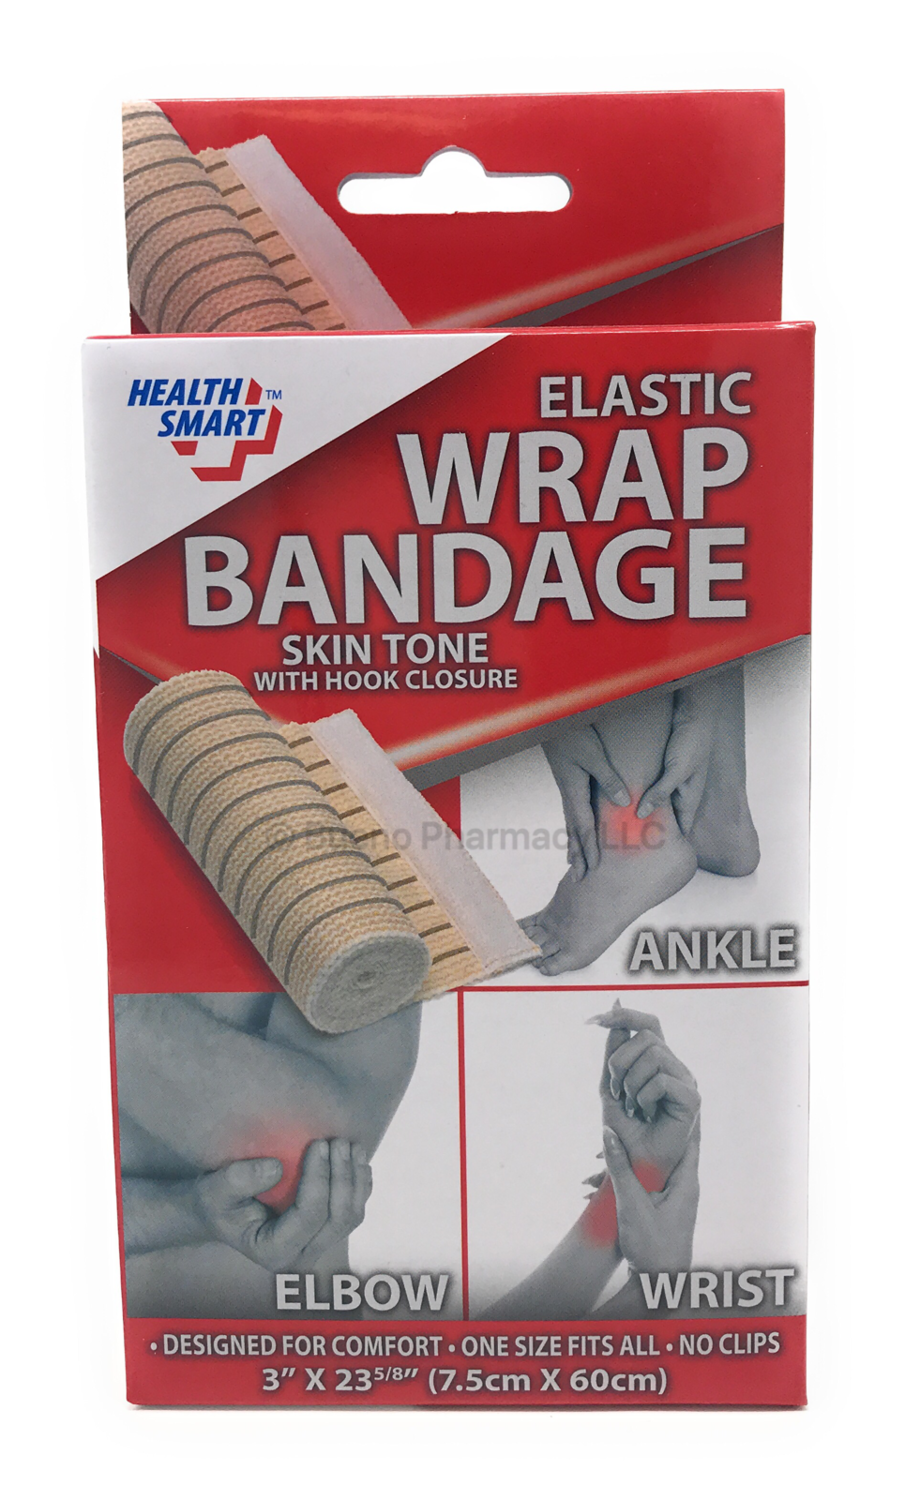 ELASTIC SUPPORT WRAP FOR WRIST, ANKLE, & ELBOW